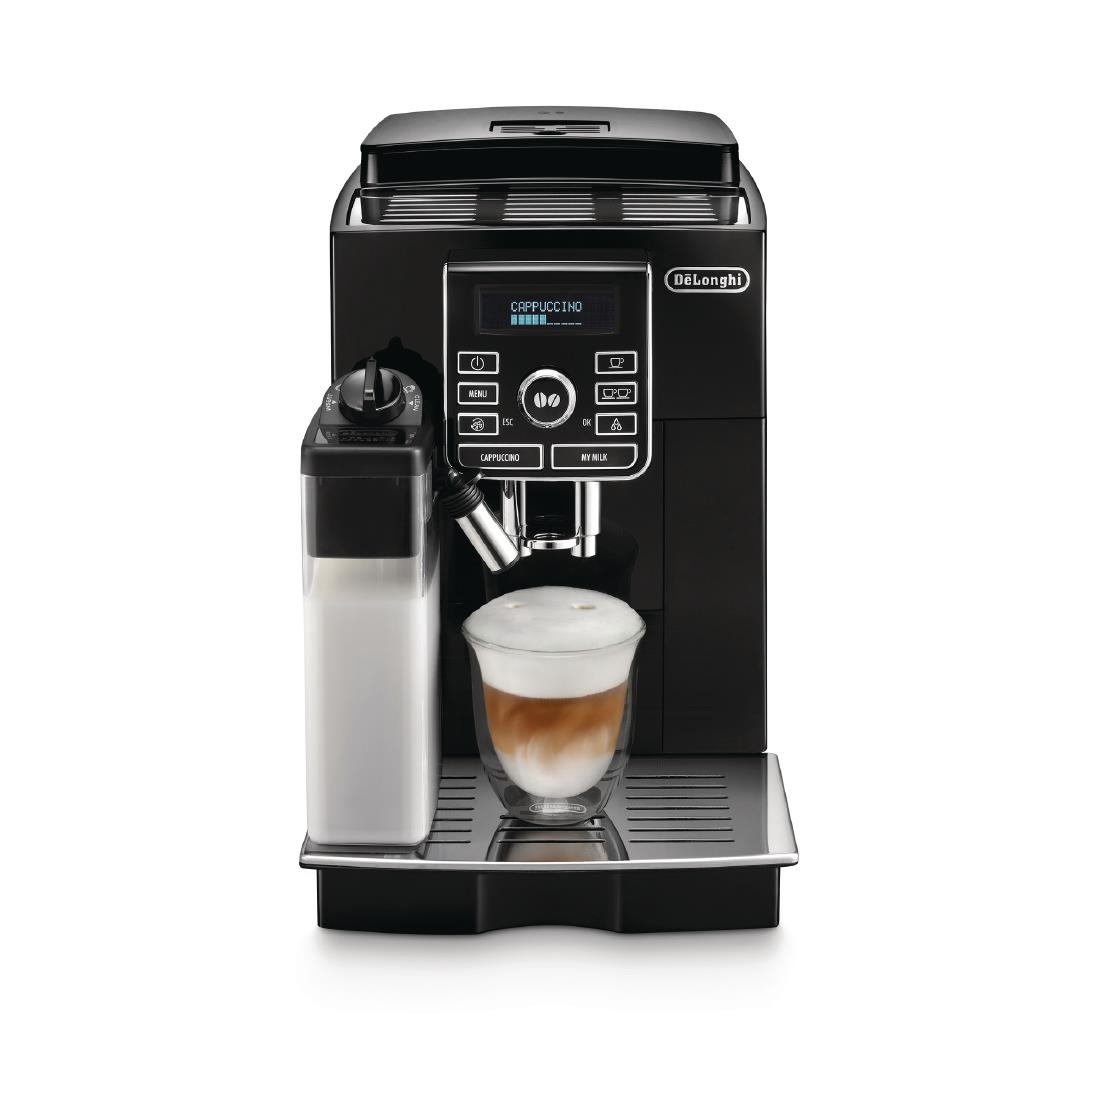 Delonghi Coffee Maker In Ksa : DeLonghi ESAM04110S Magnifica Bean to Cup Espresso Maker